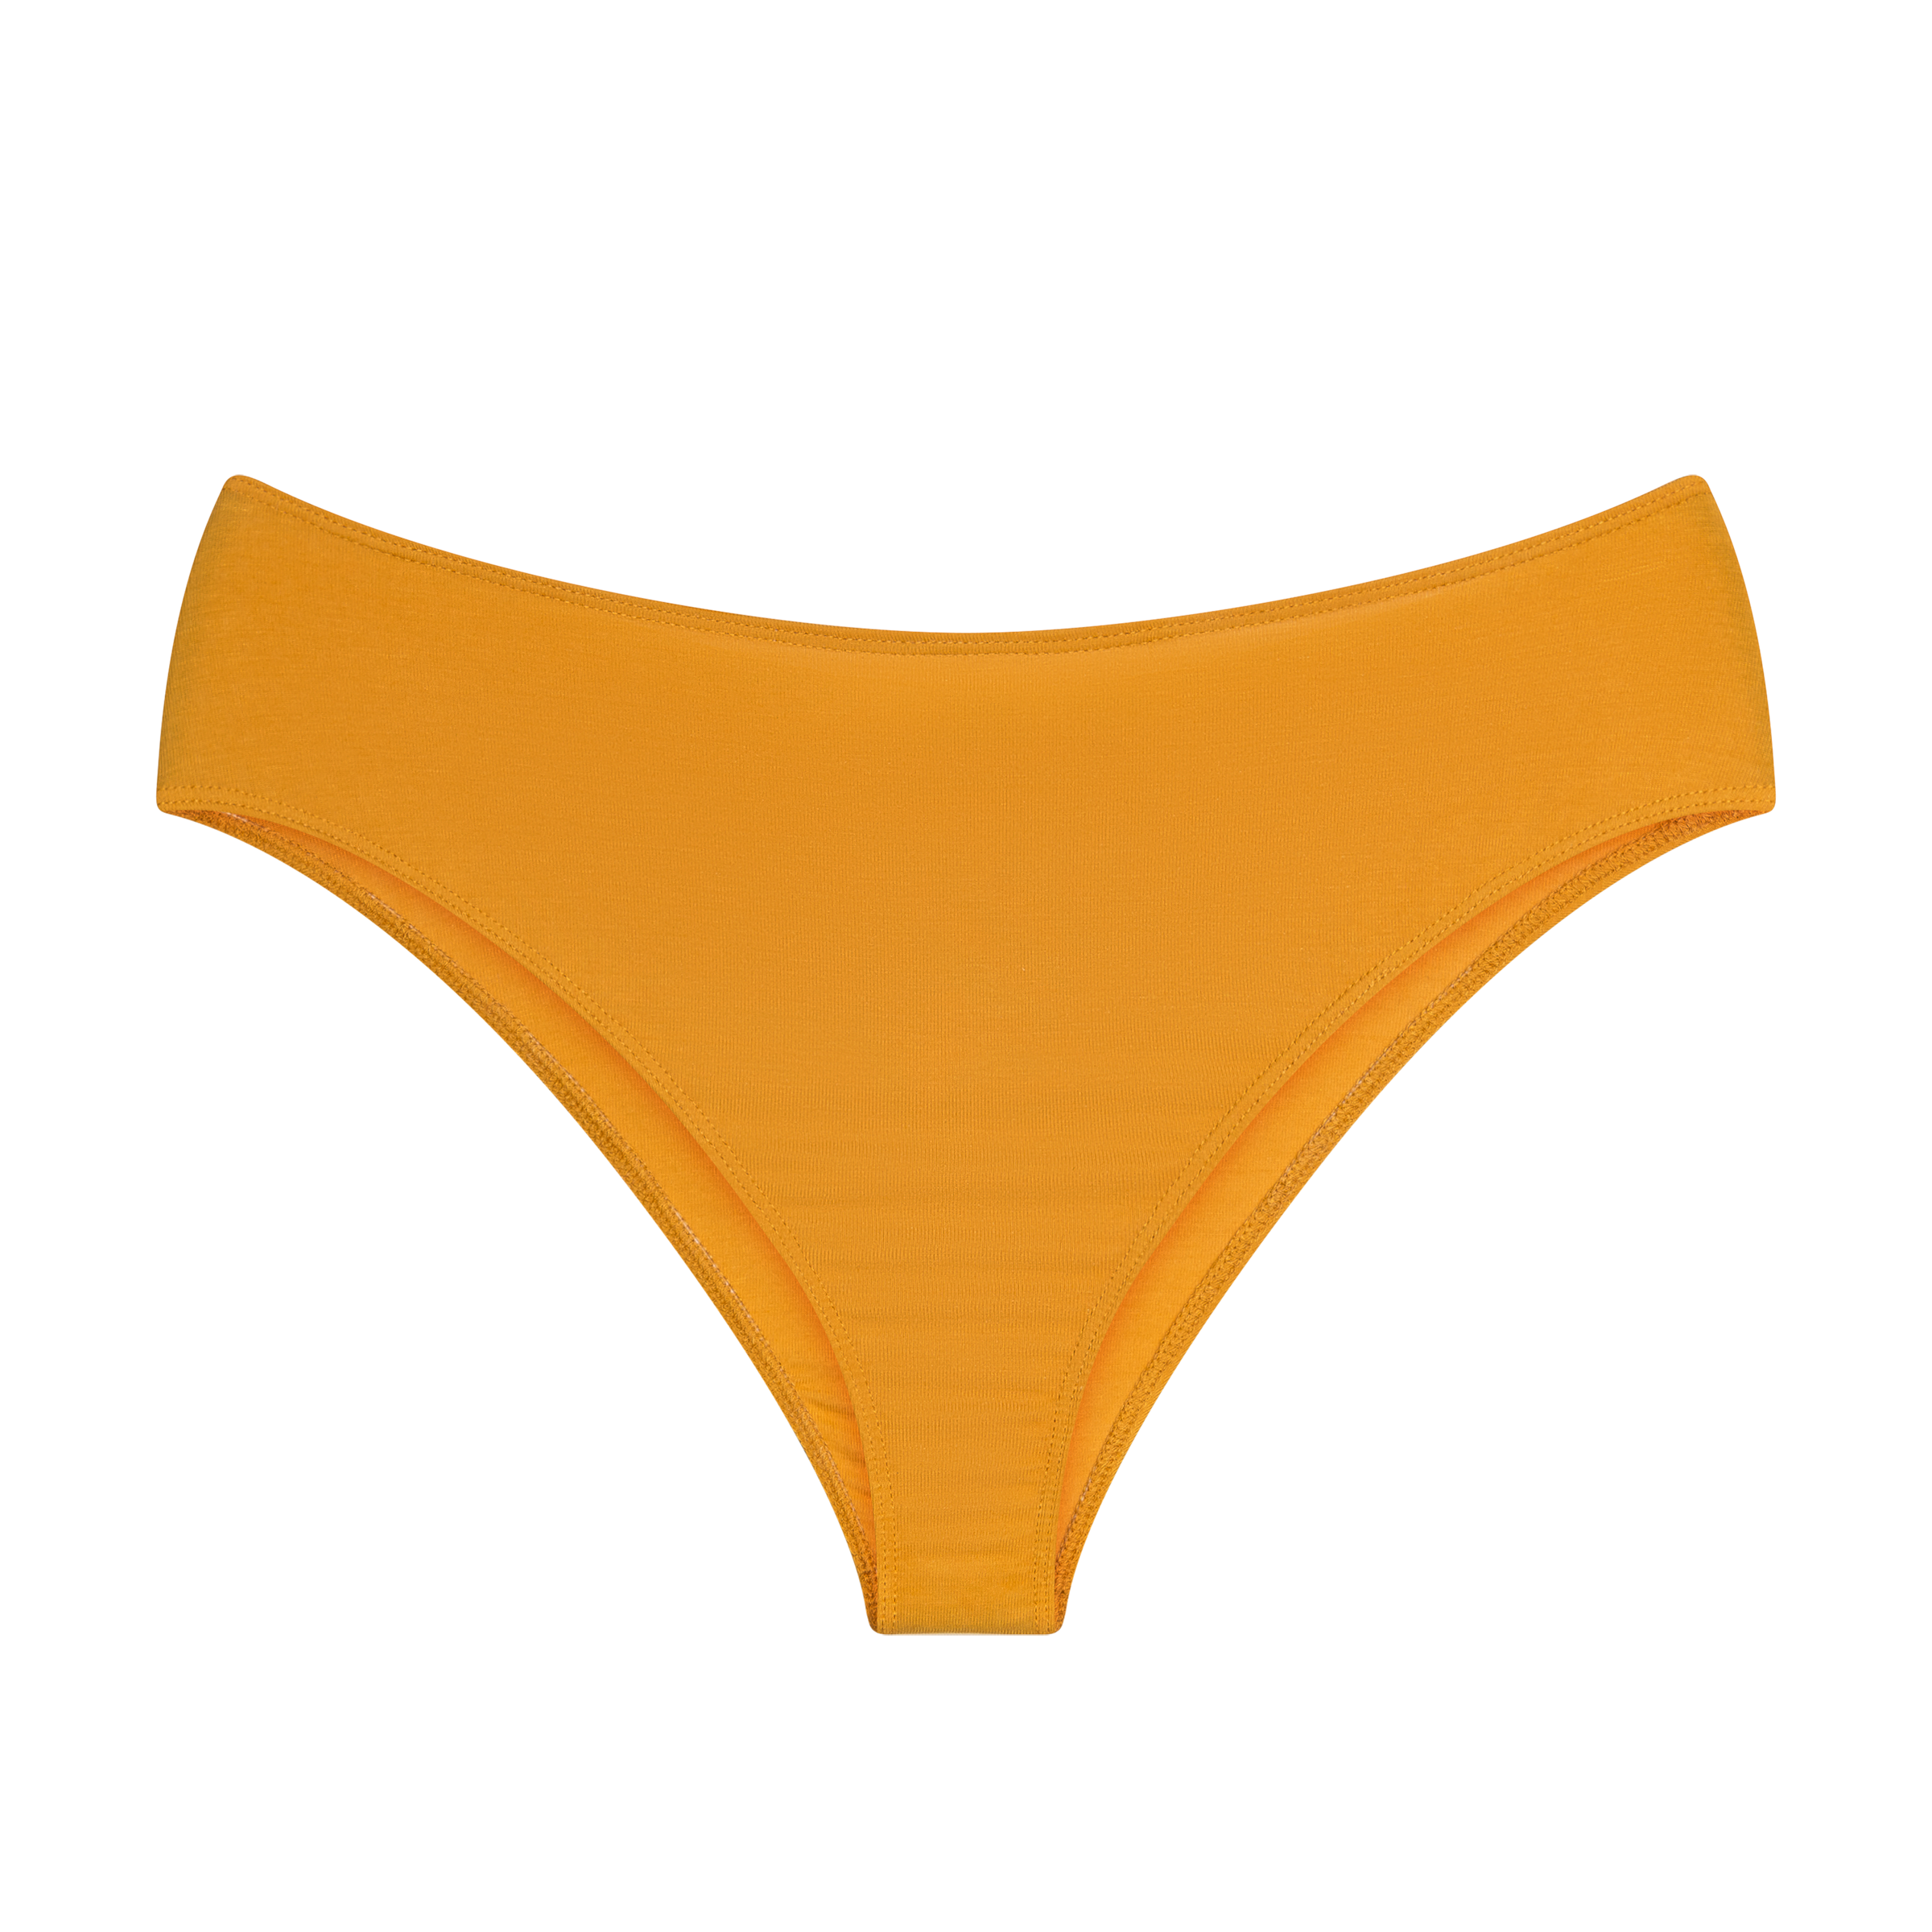 Yellow underwear product image